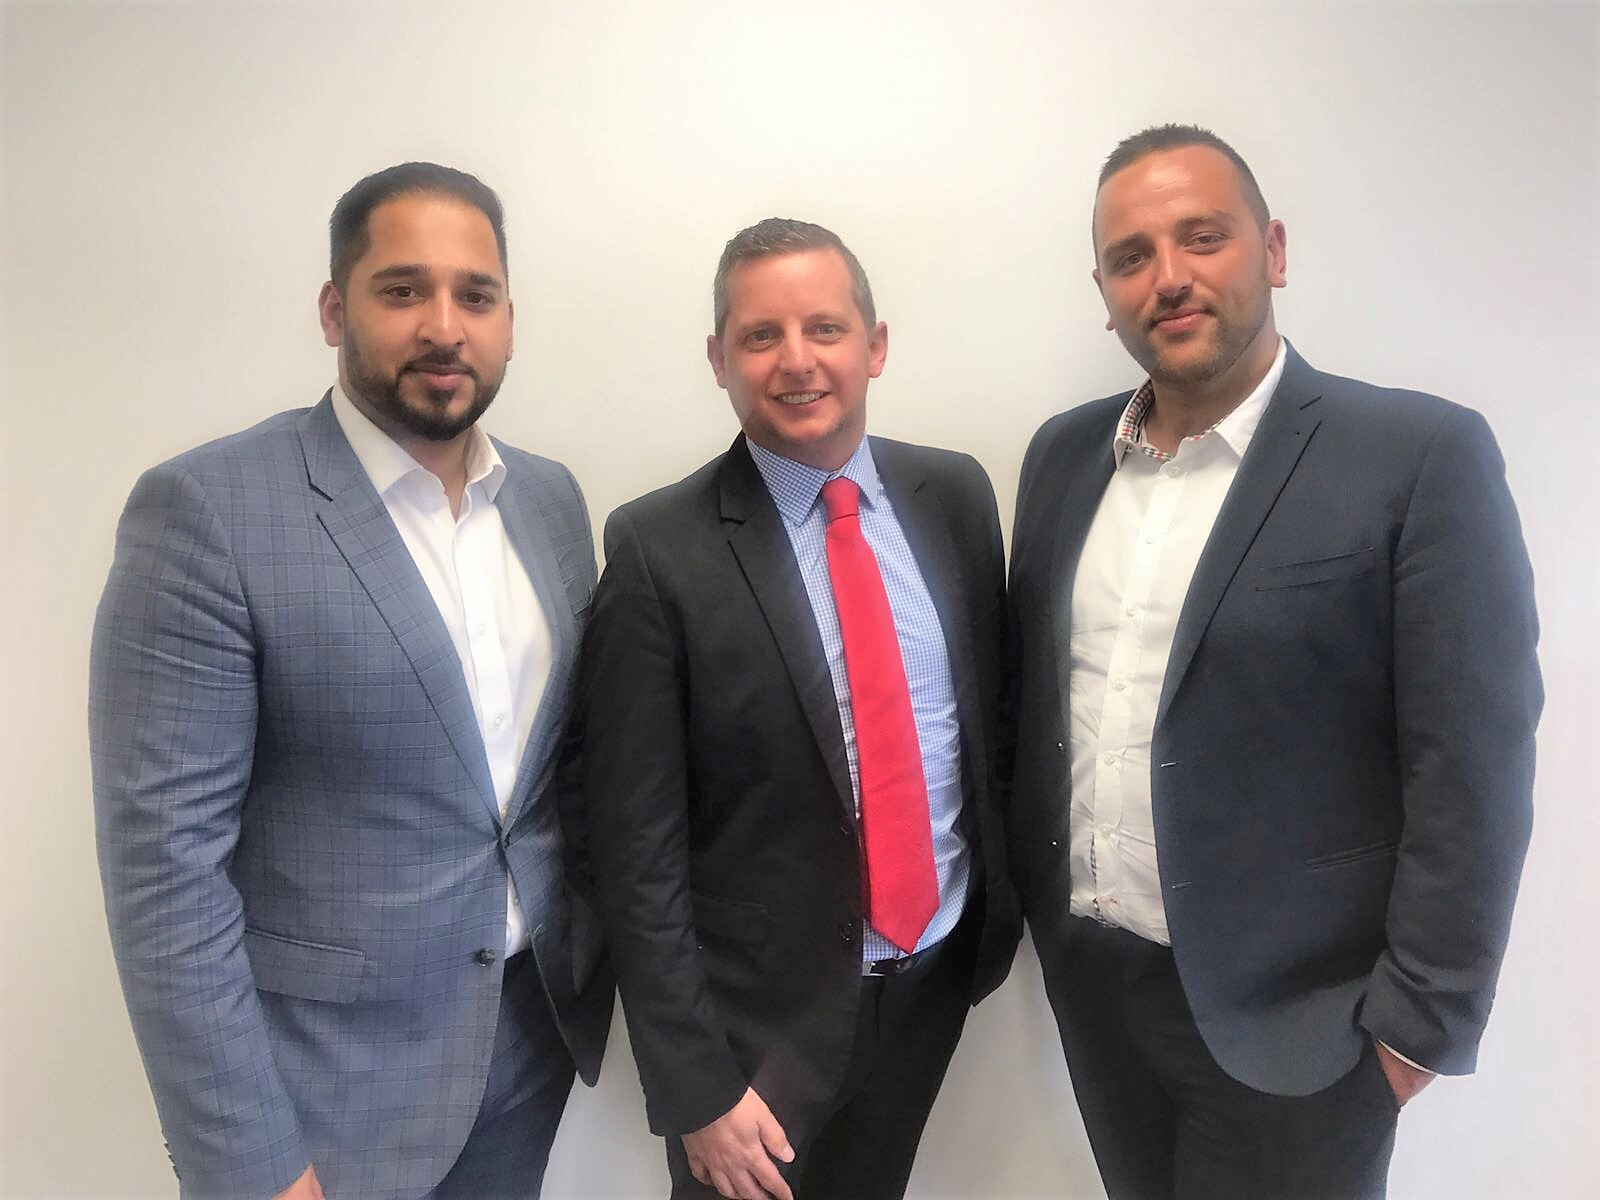 Dan Carlin (middle) - Industry Expert Joins Staffing Match Recruitment